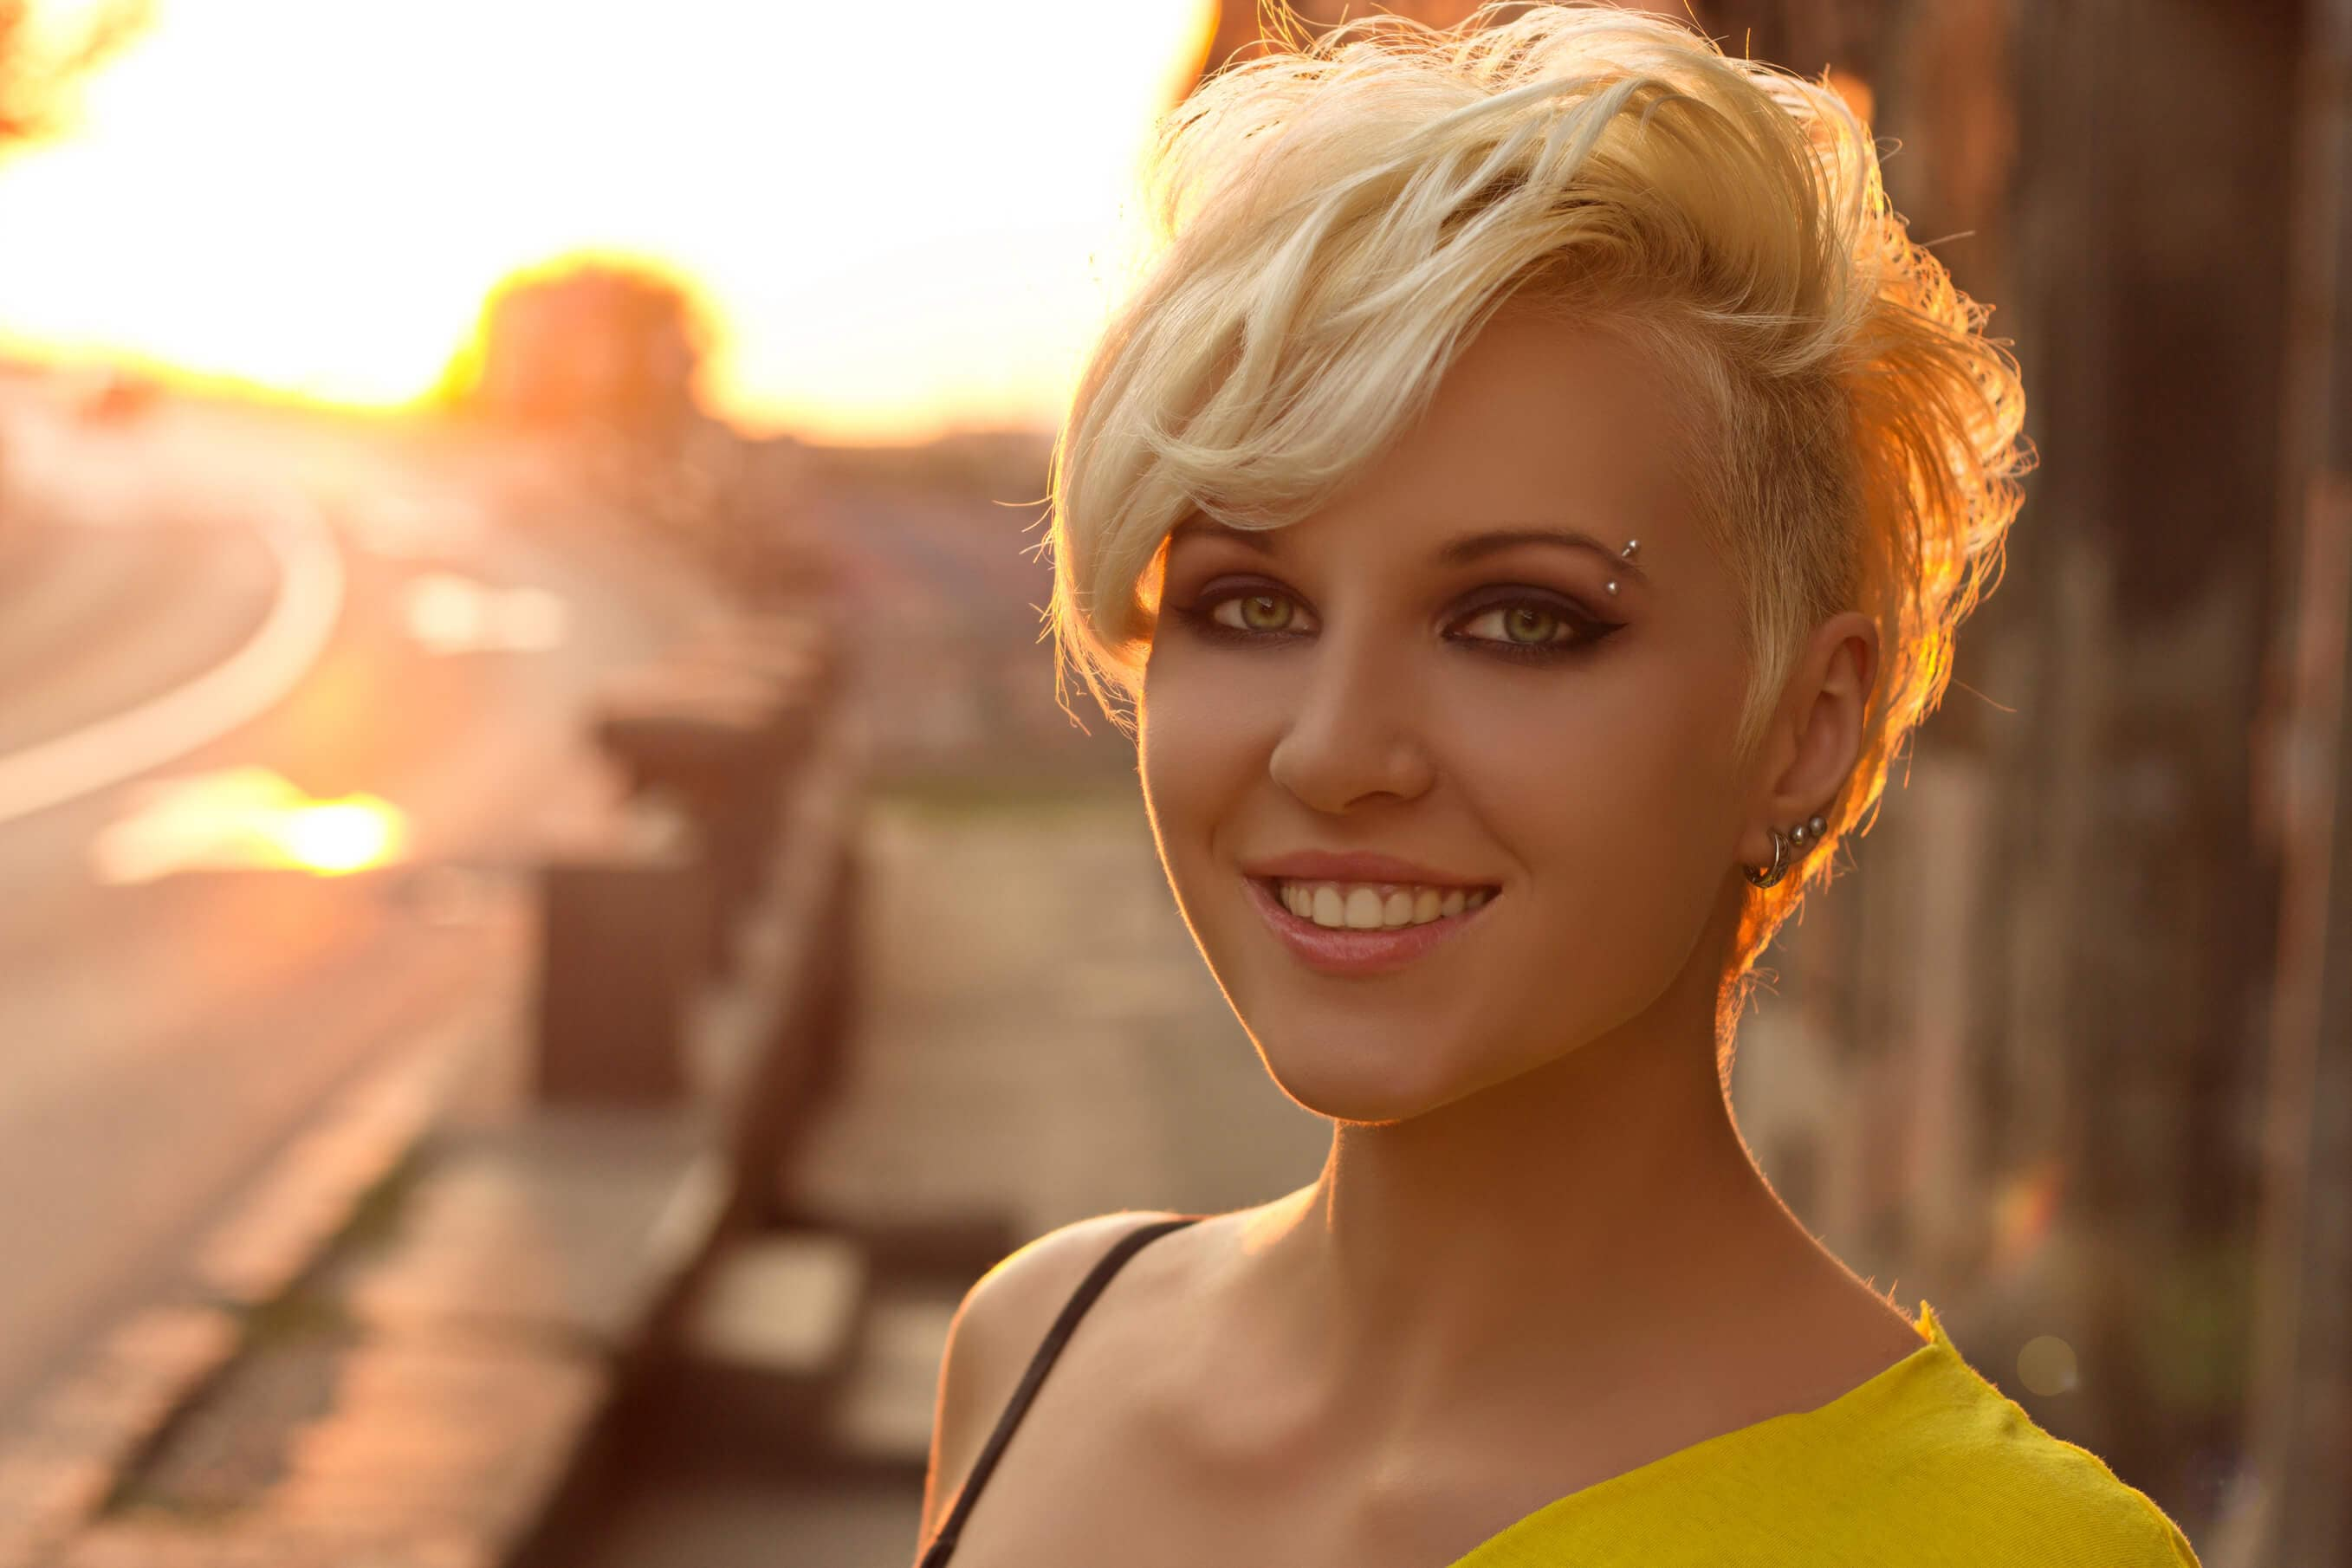 a blonde woman with short pixie hair cut standing outside